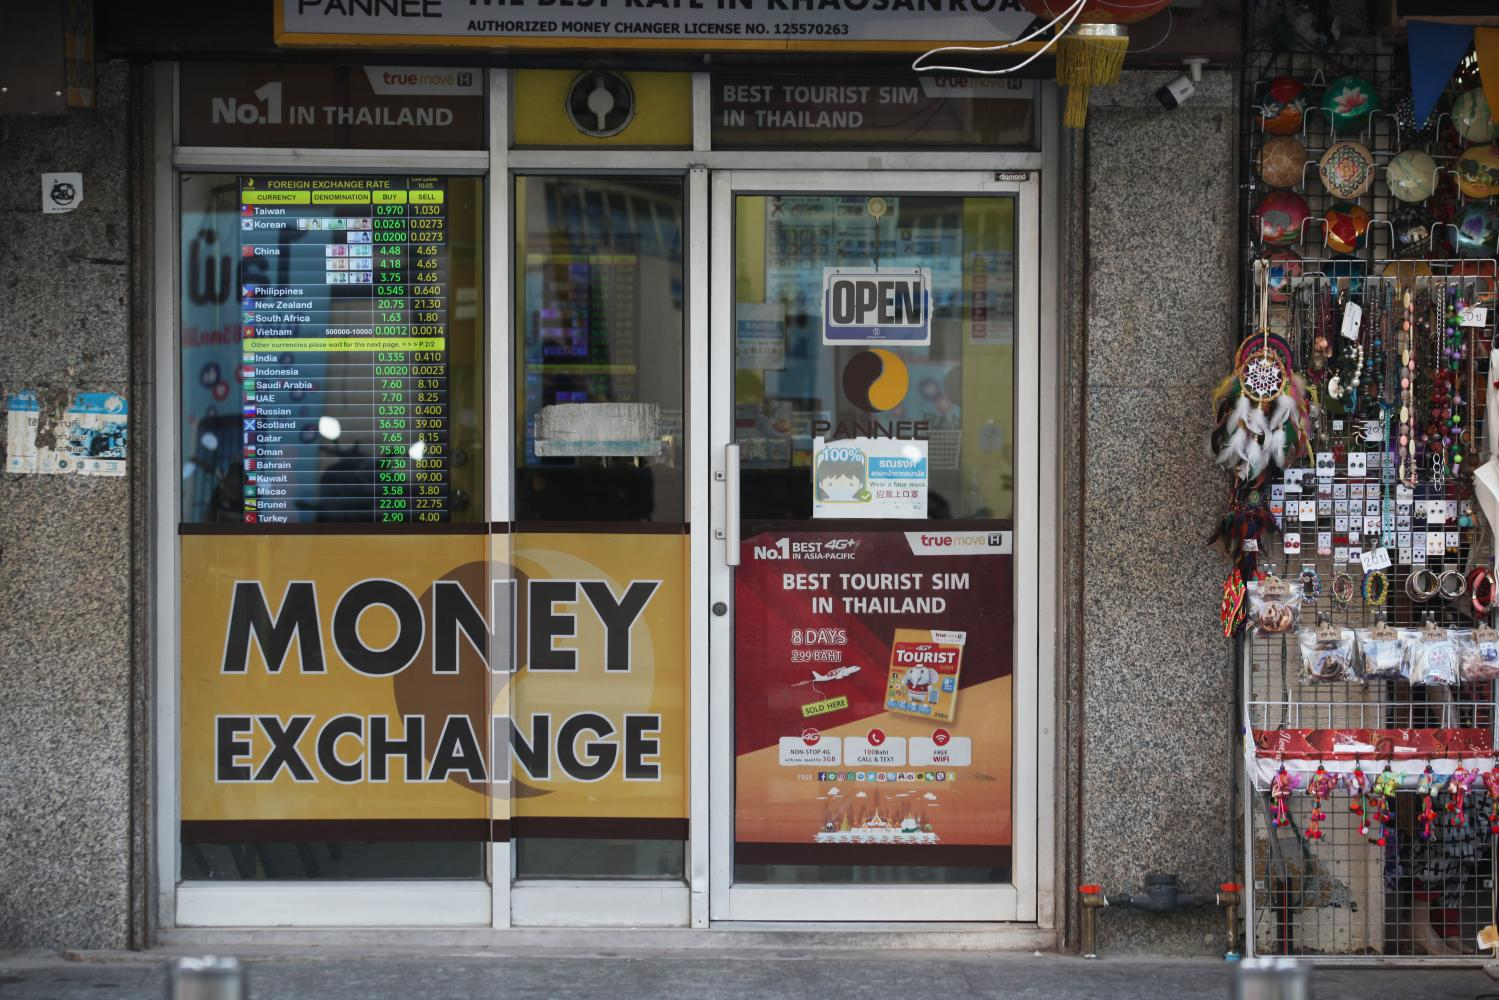 A forex kiosk on Khao San Road in Bangkok. The baht has plunged in the past two months. (Photo: Nutthawat Wicheanbut)